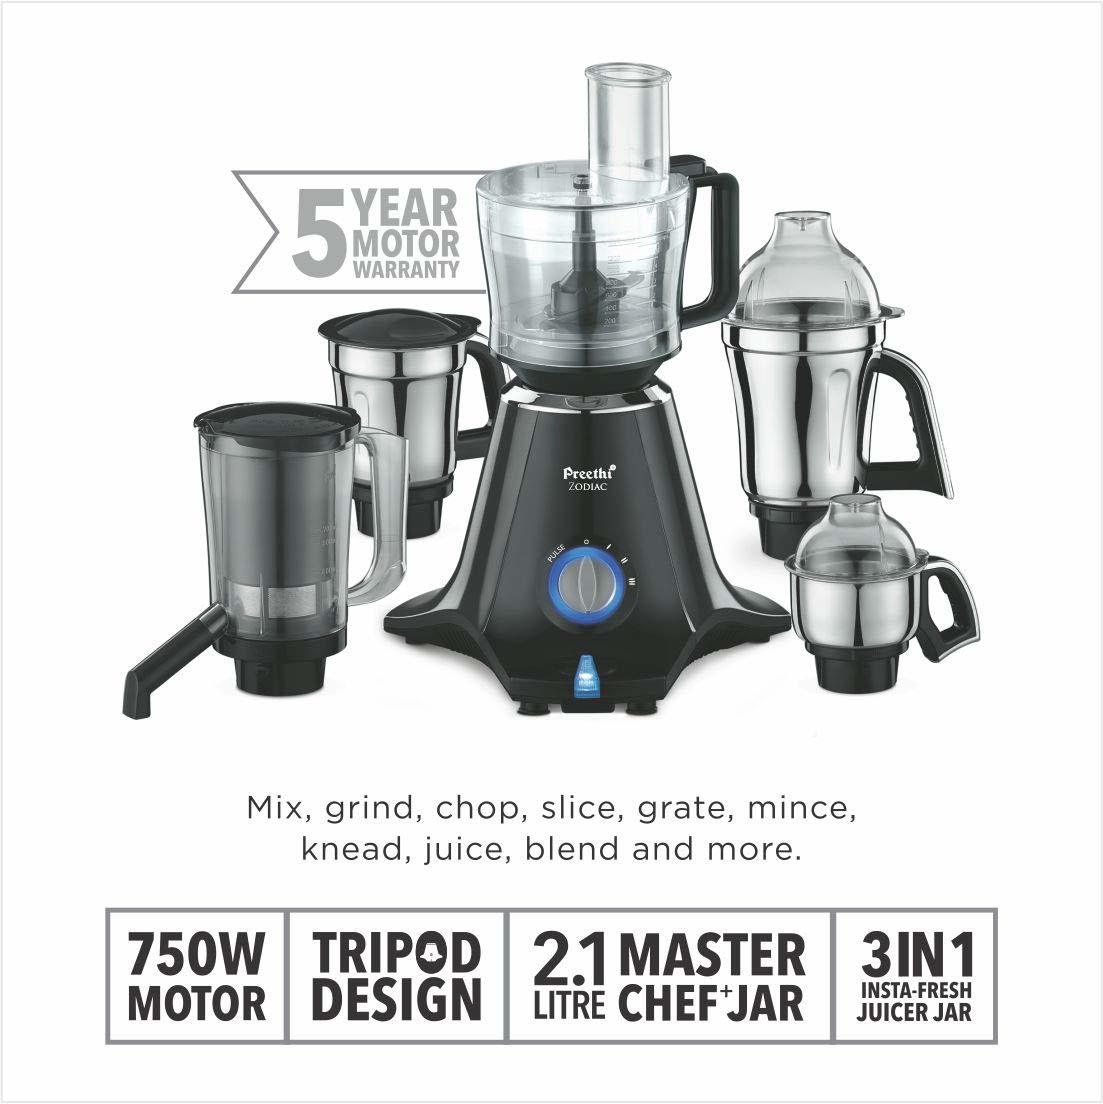 Preethi Zodiac MG 218 750-Watt Mixer Grinder with 5 Jars (Black/Light Grey)